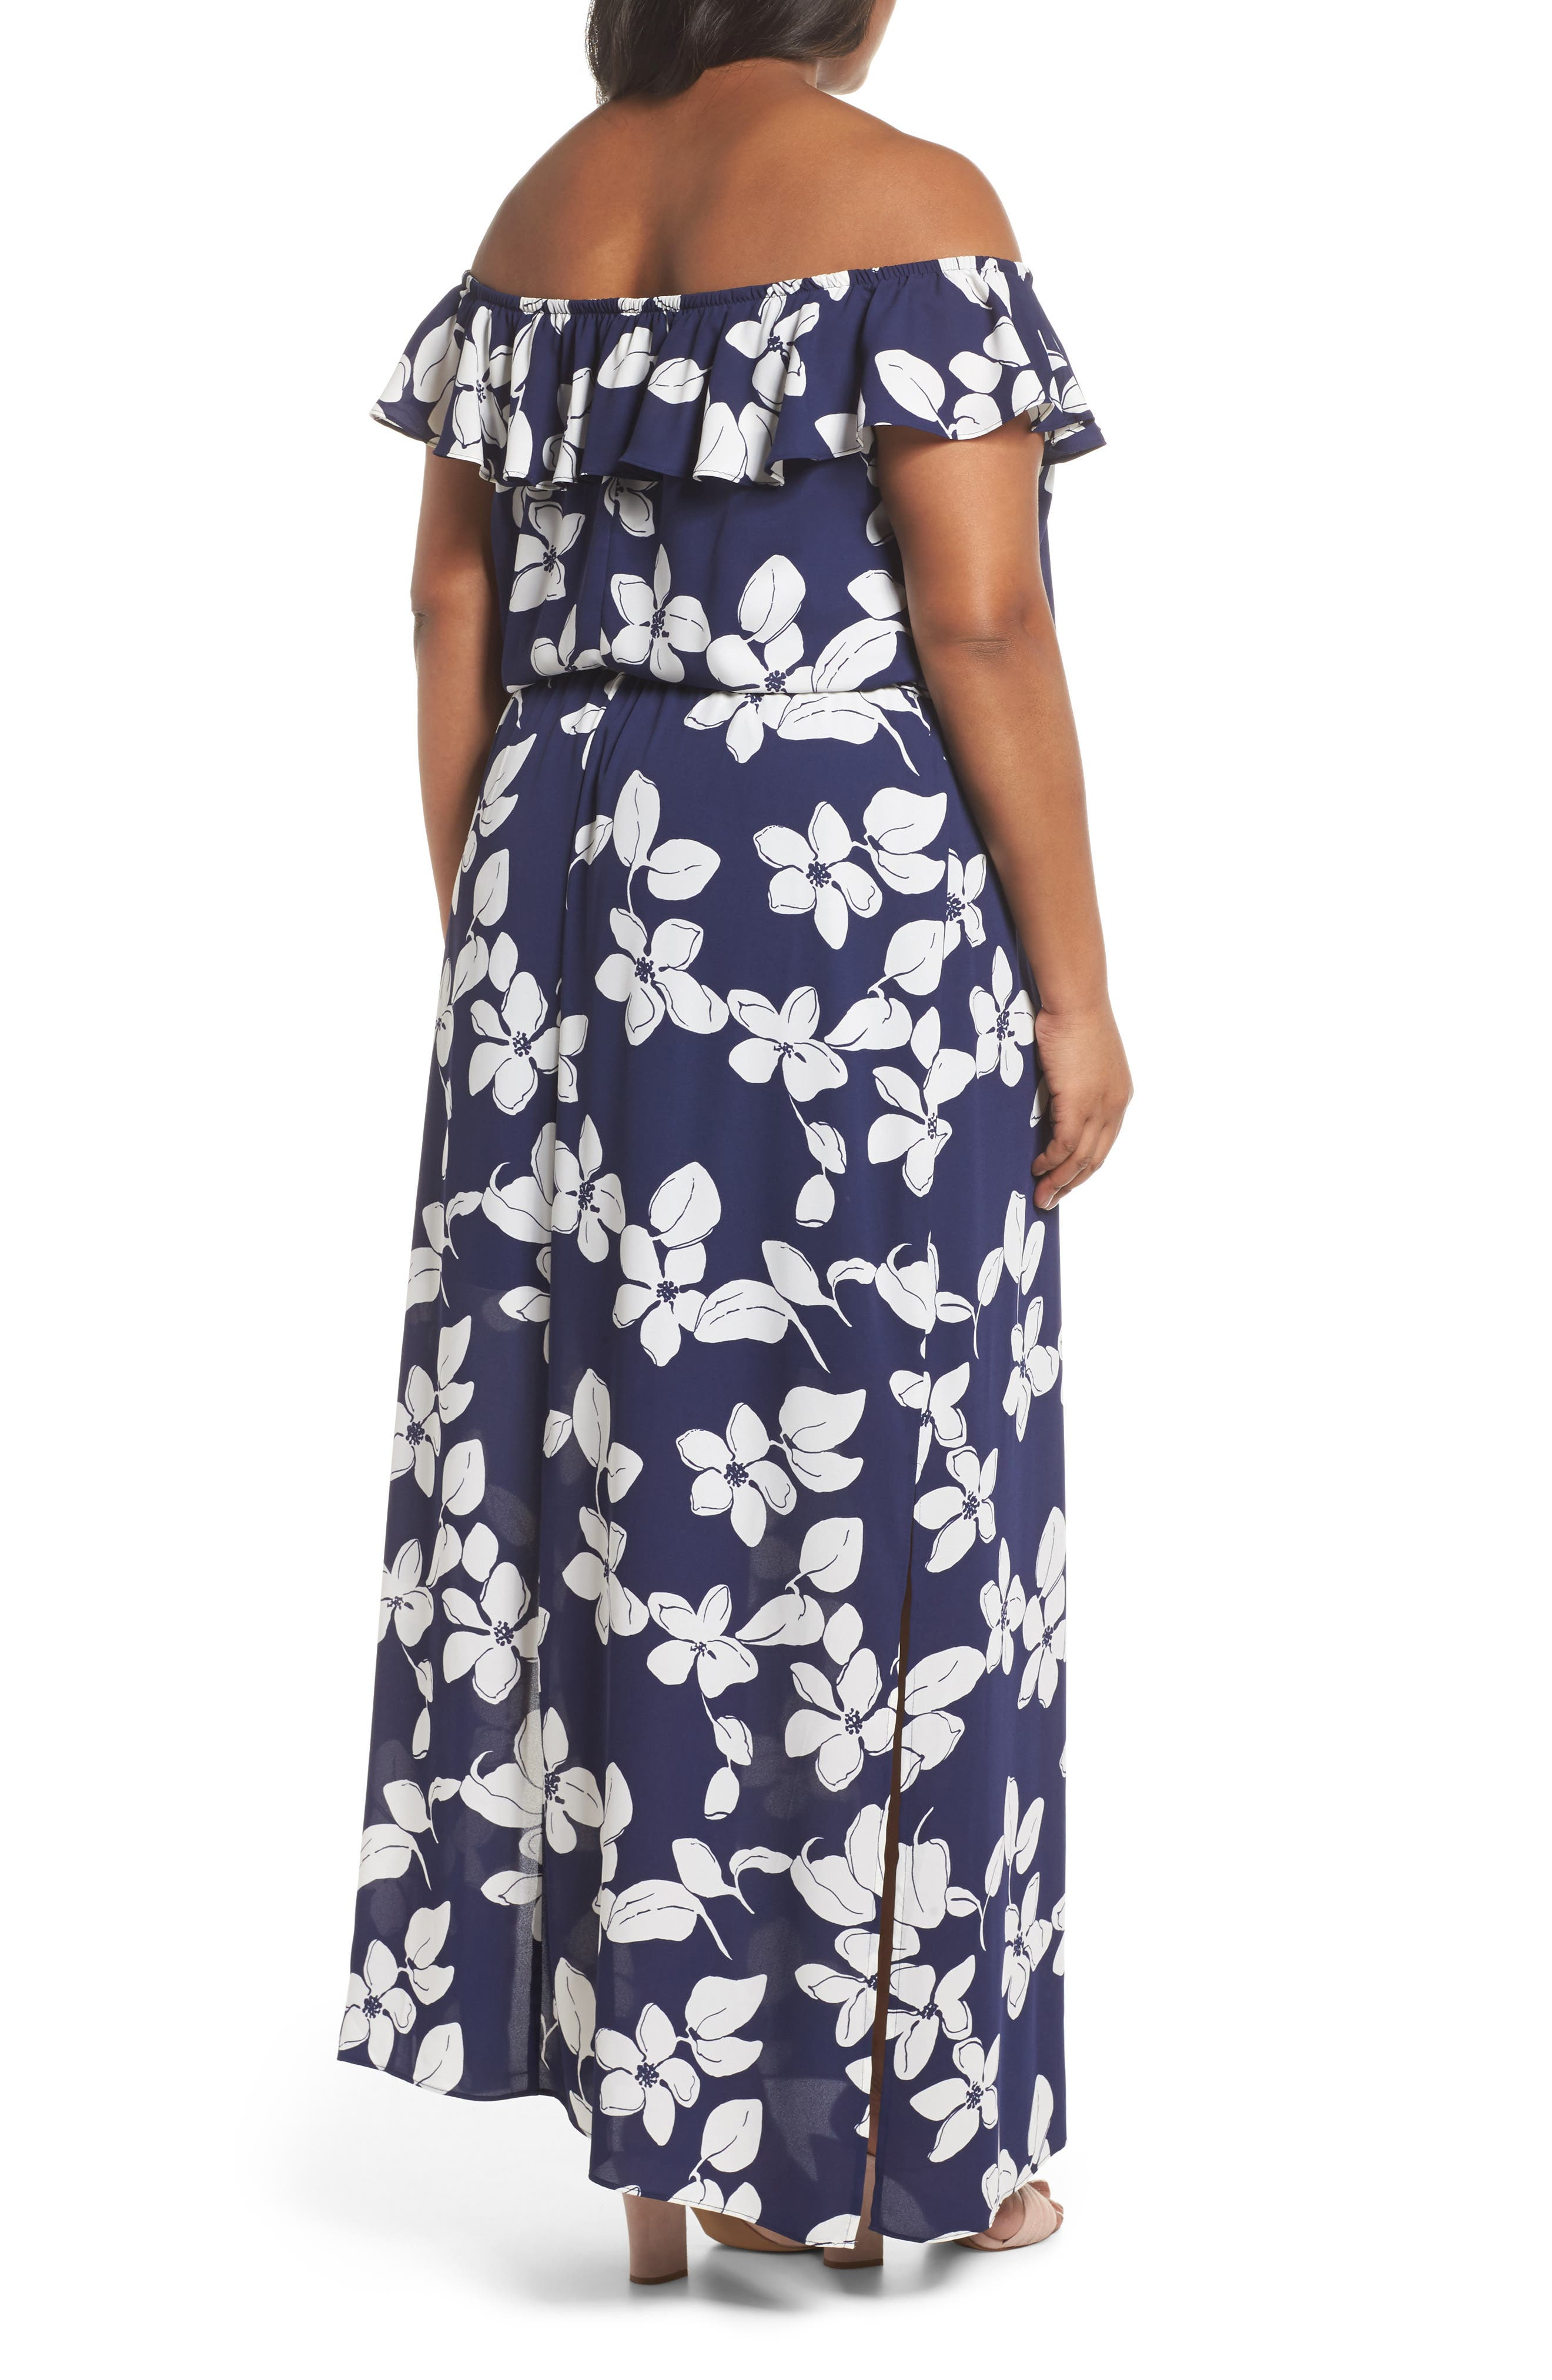 ADRIANNA PAPELL,                             Simple Delight Ruffle Maxi Dress,                             Alternate thumbnail 2, color,                             480